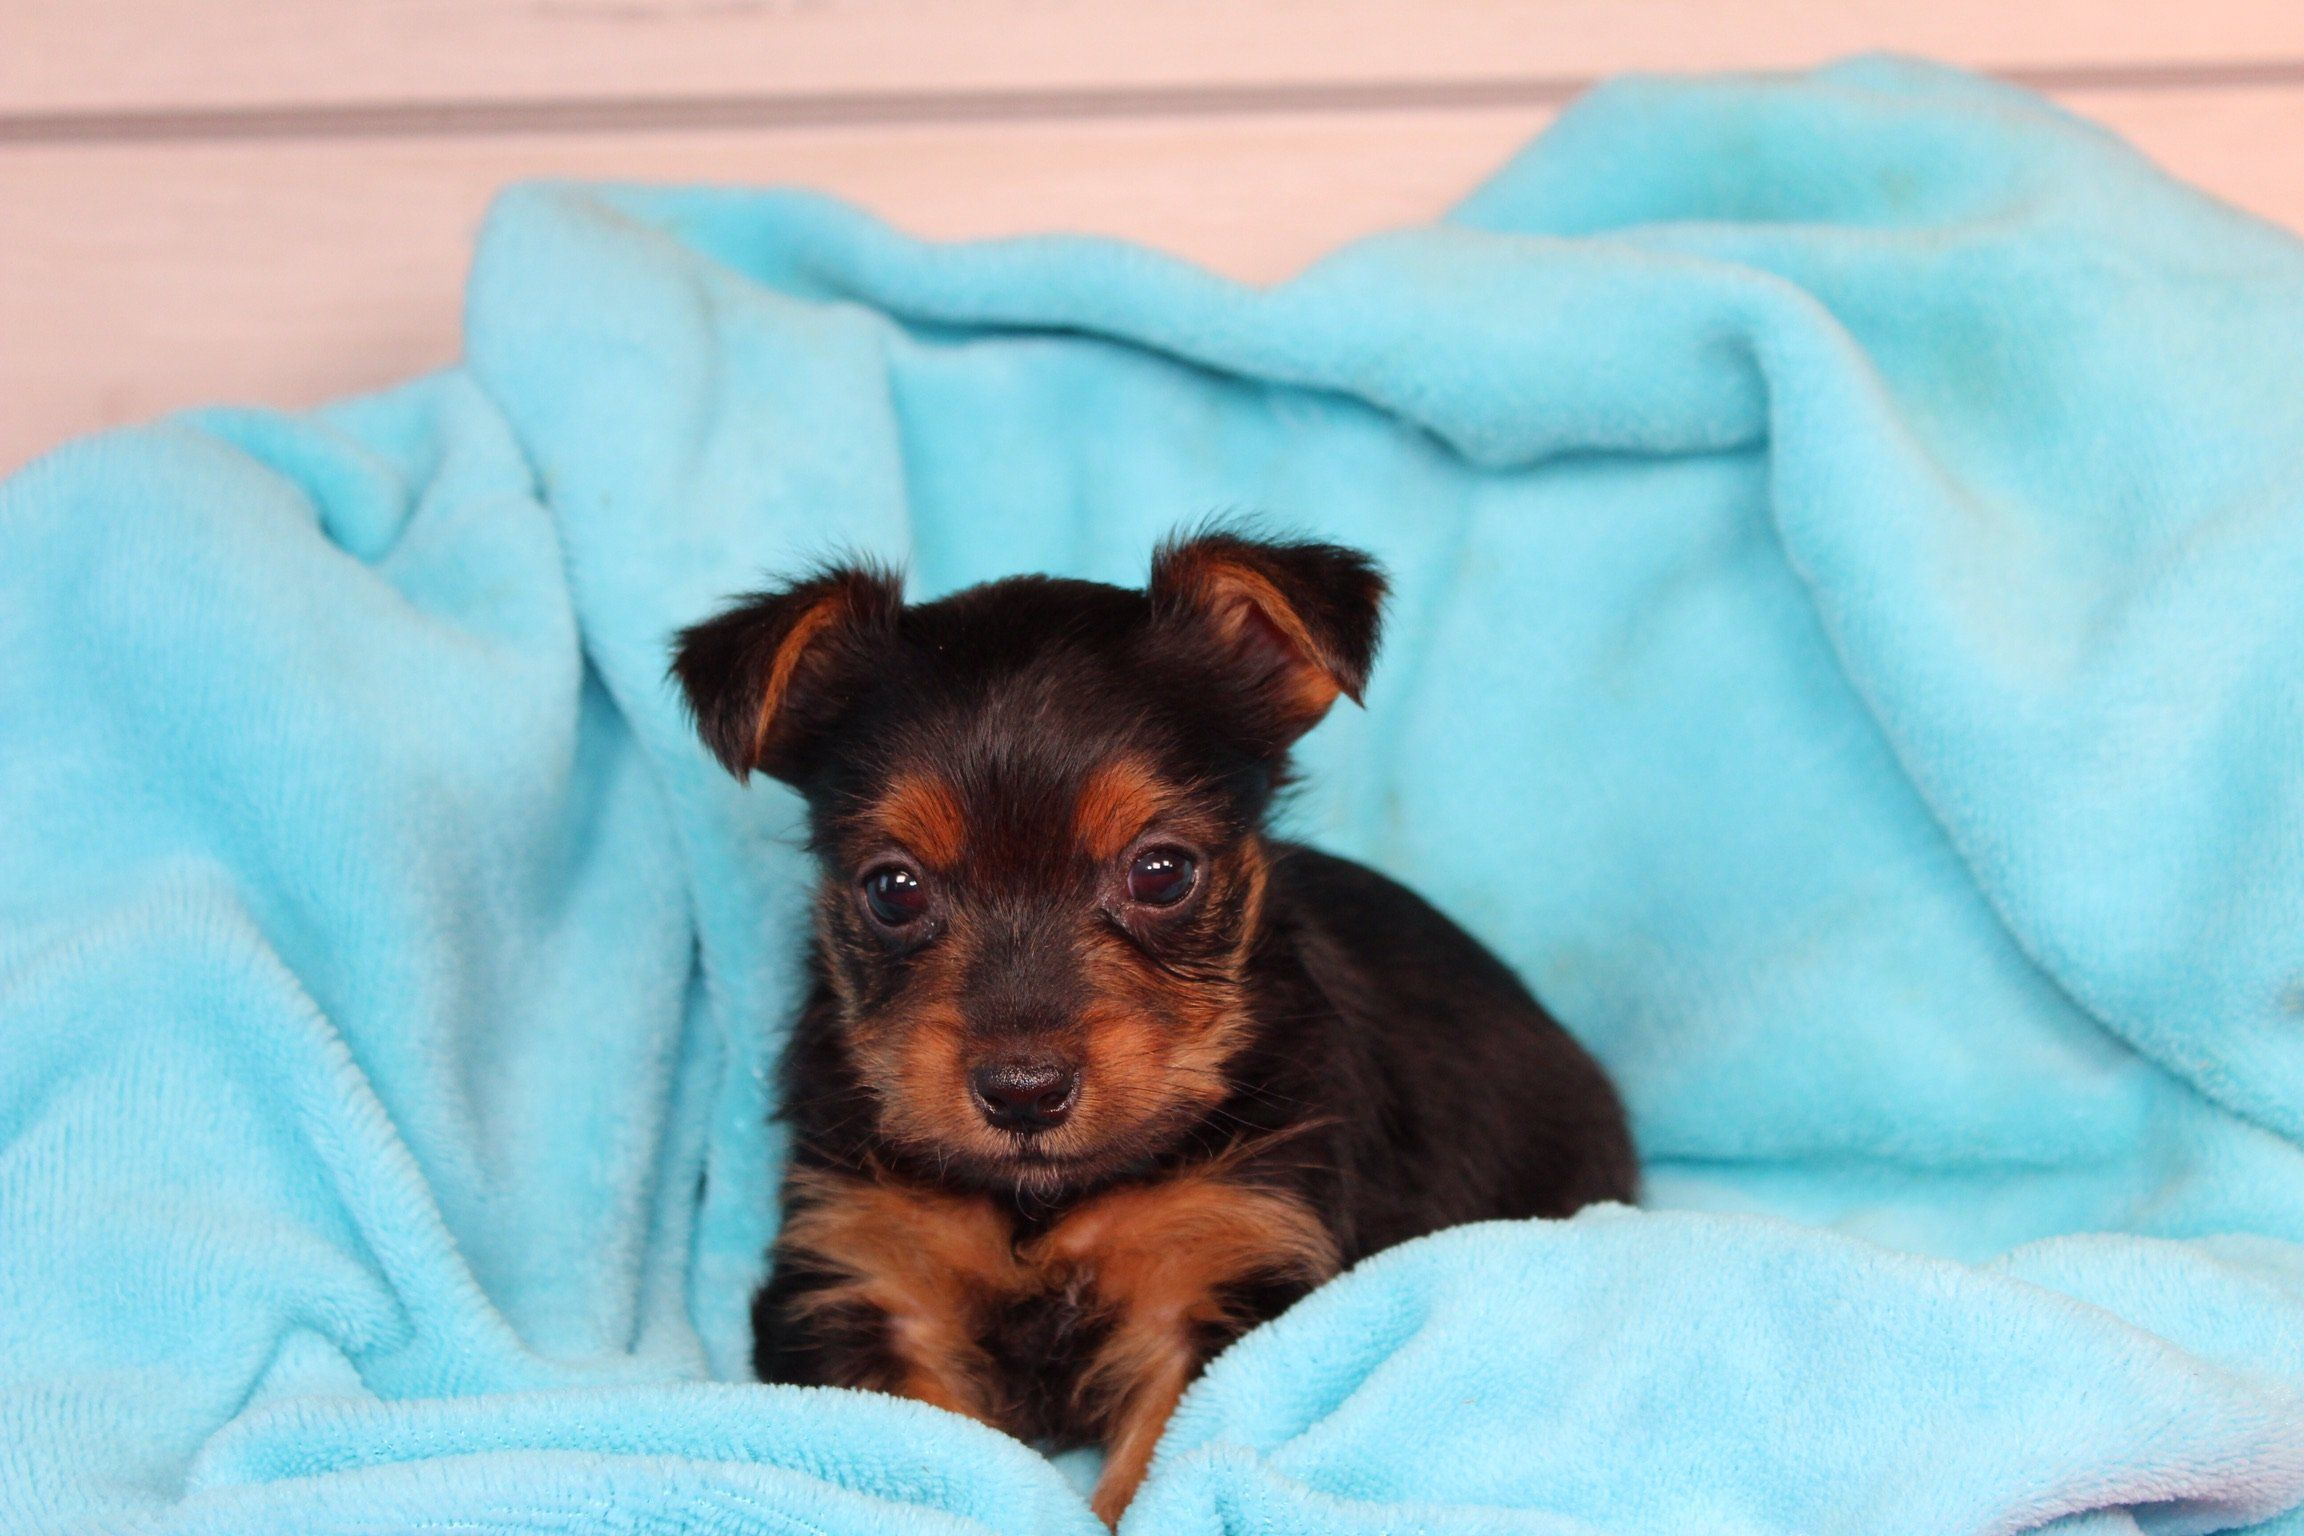 Trex Akc Male Yorkshire Terrier Puppy For Sale Near Nappanee Indiana In 2020 Yorkshire Terrier Puppies Puppies Puppies For Sale